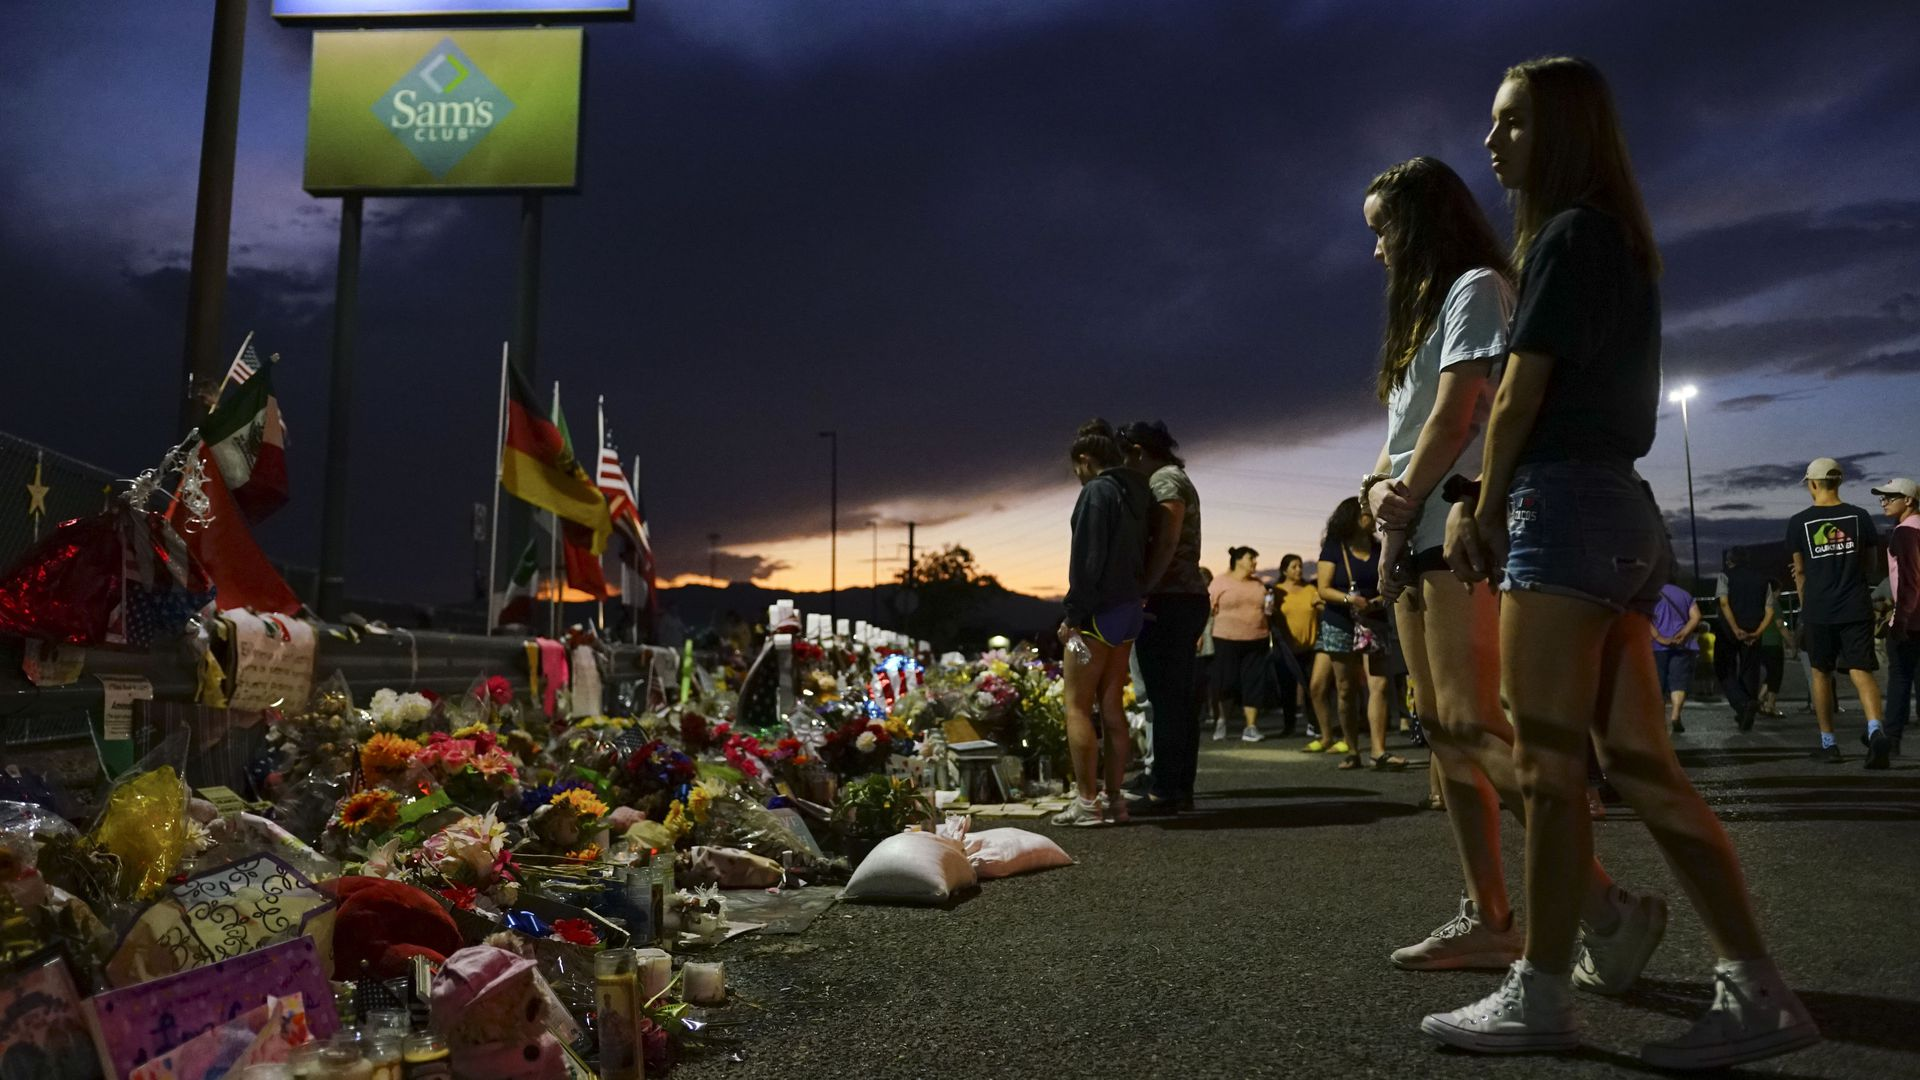 People look at flowers laid out to honor the victims of the El Paso shooting.